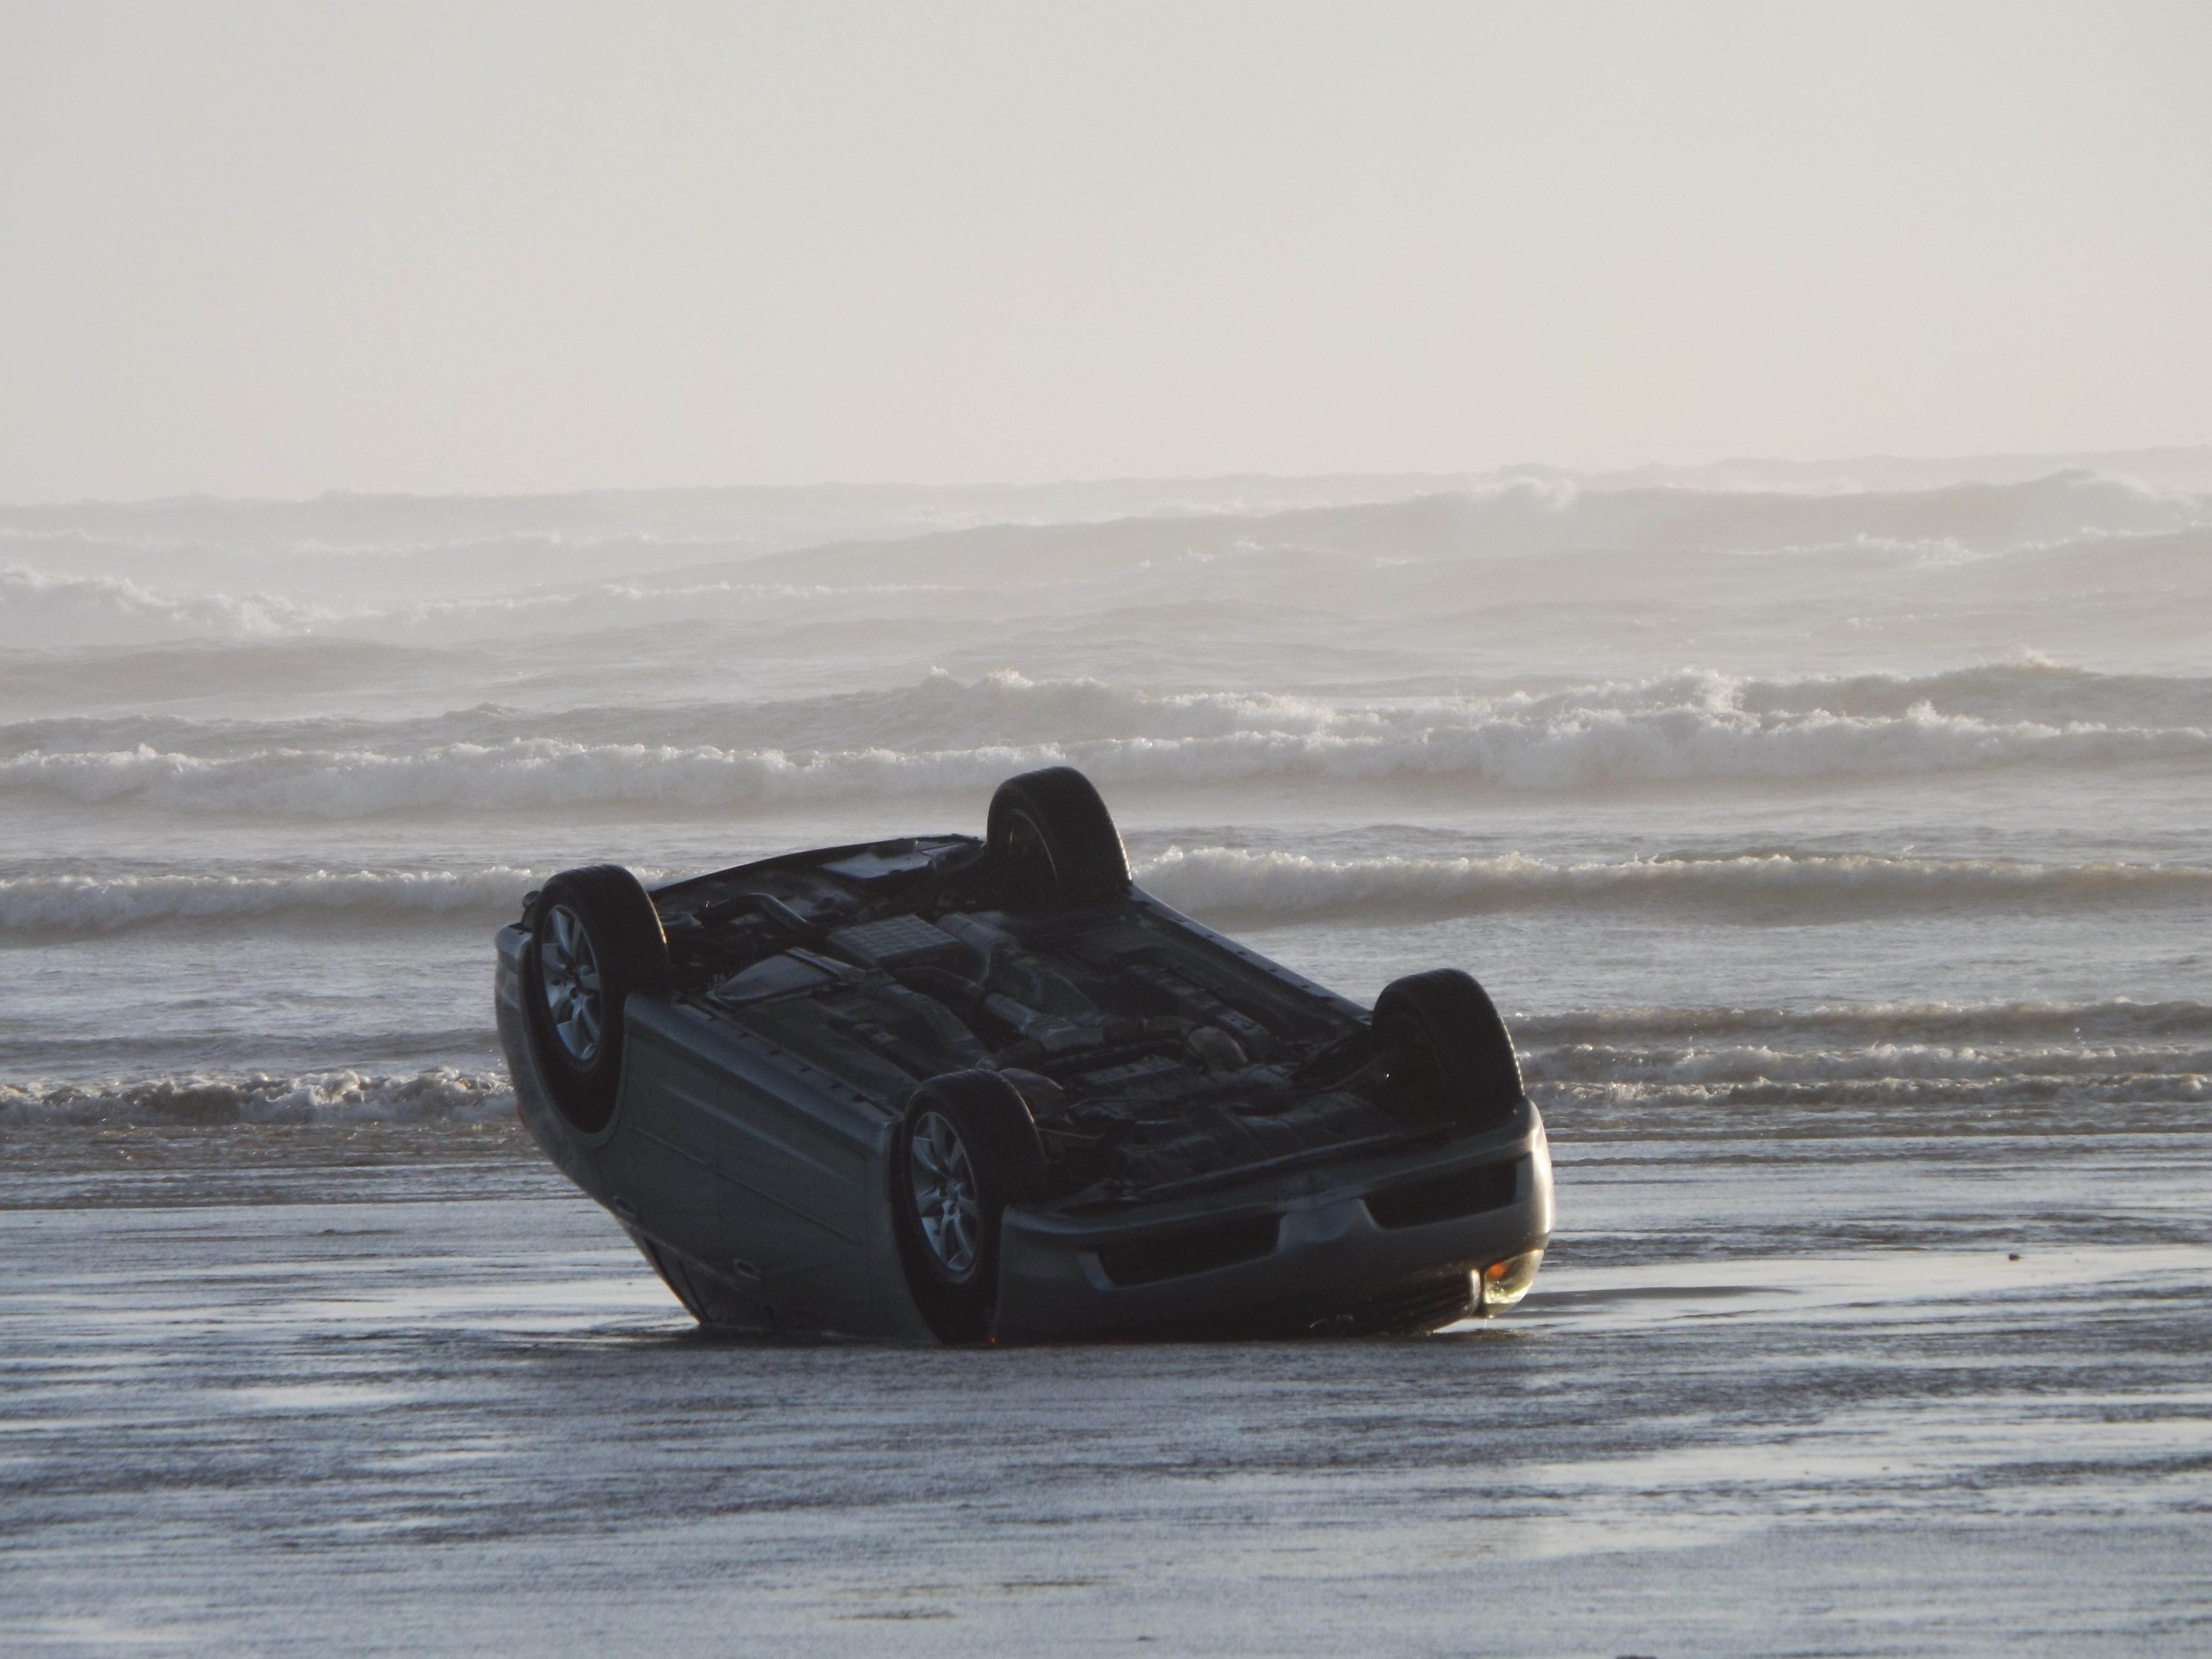 Family rescued from car on beach seconds before waves roll it over